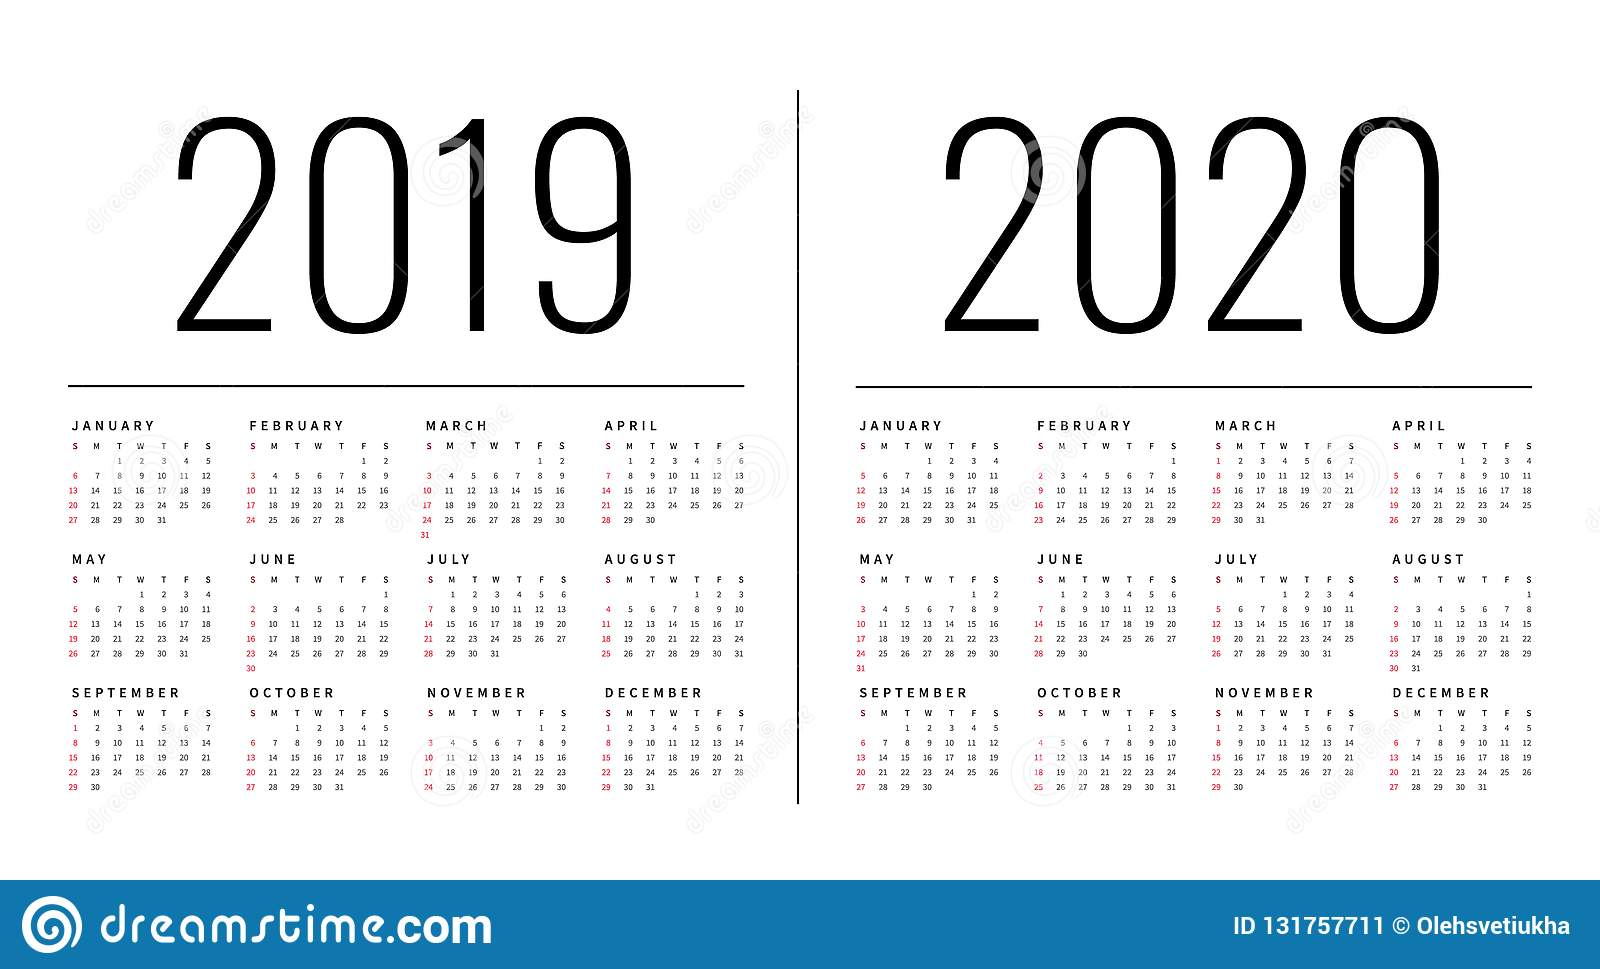 Mockup Simple calendar Layout for 2019 and 2020 years. Week starts from Monday